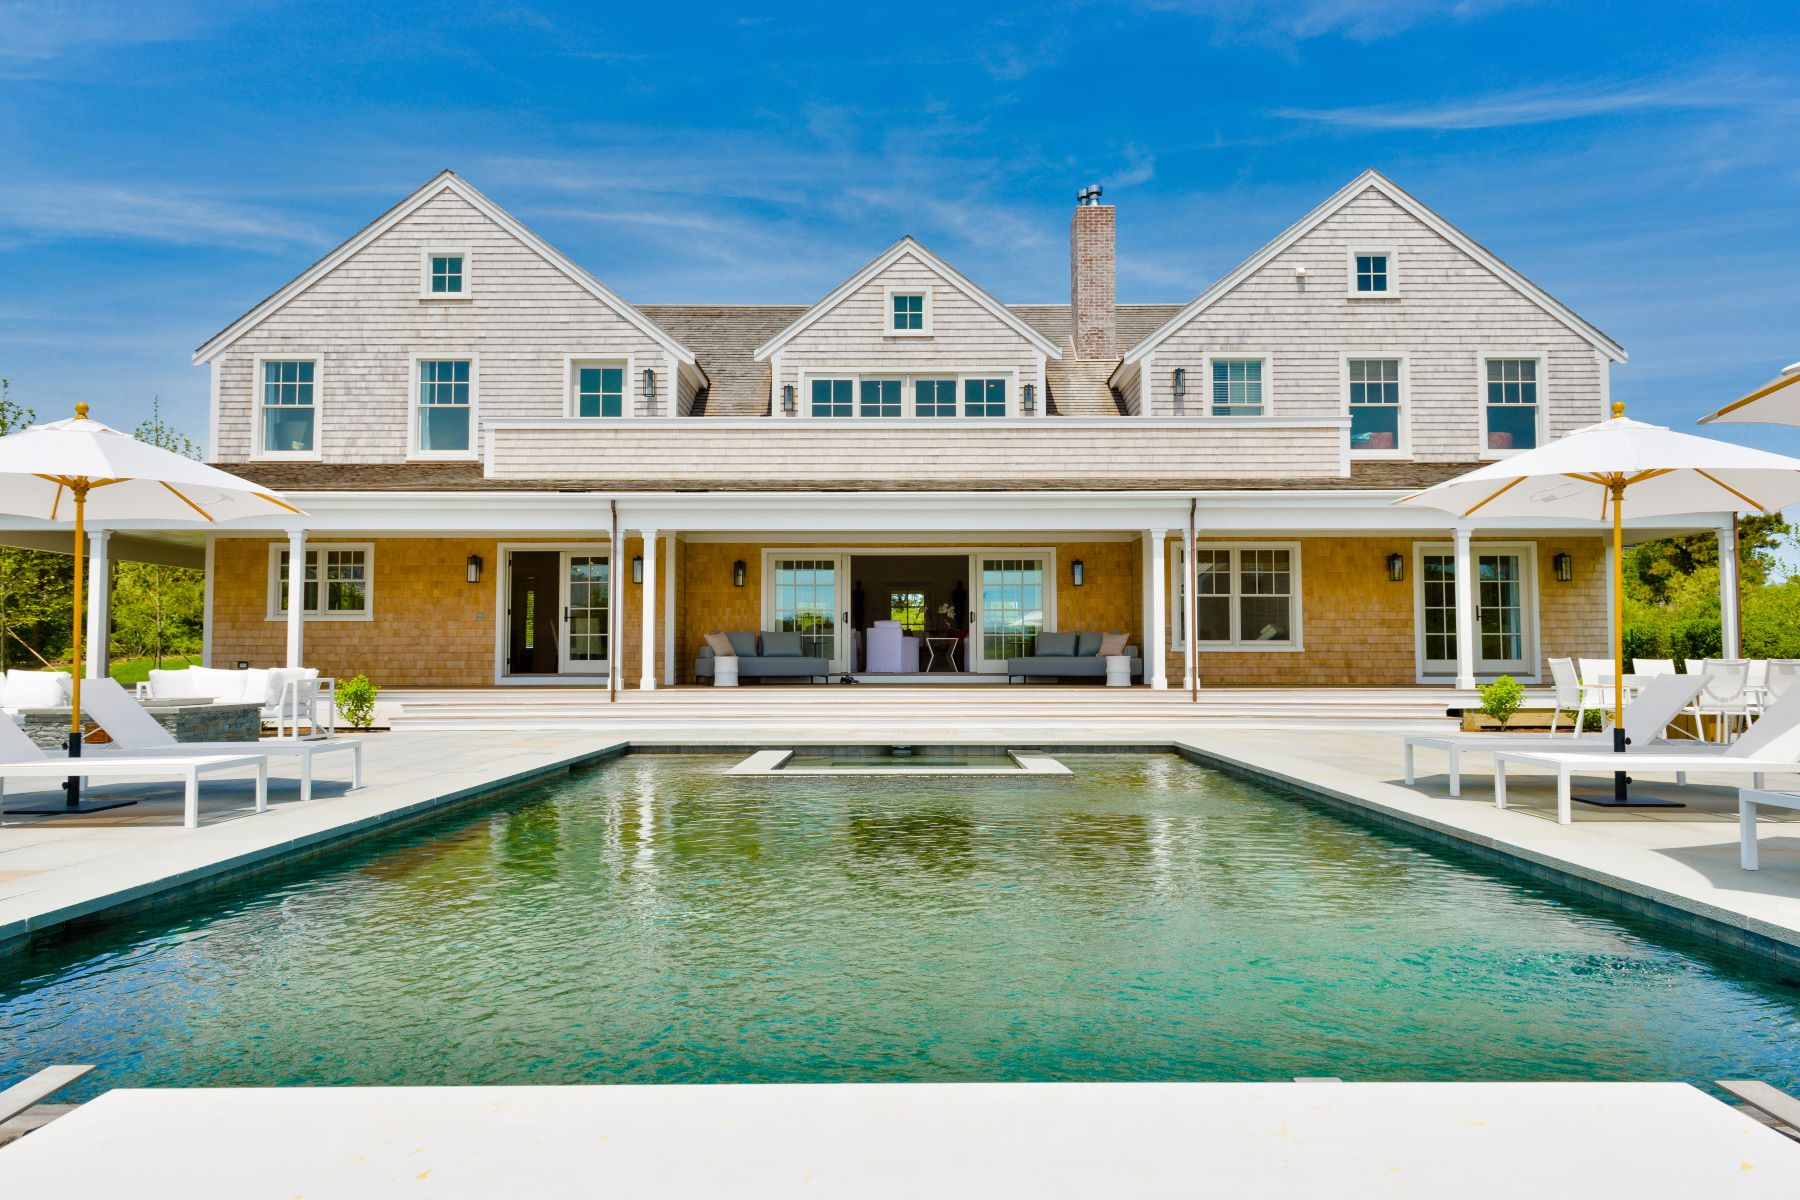 Single Family Homes for Sale at BRAND NEW CONSTRUCTION AND CONTEMPORARY STYLING 18 Bishops Rise Nantucket, Massachusetts 02554 United States